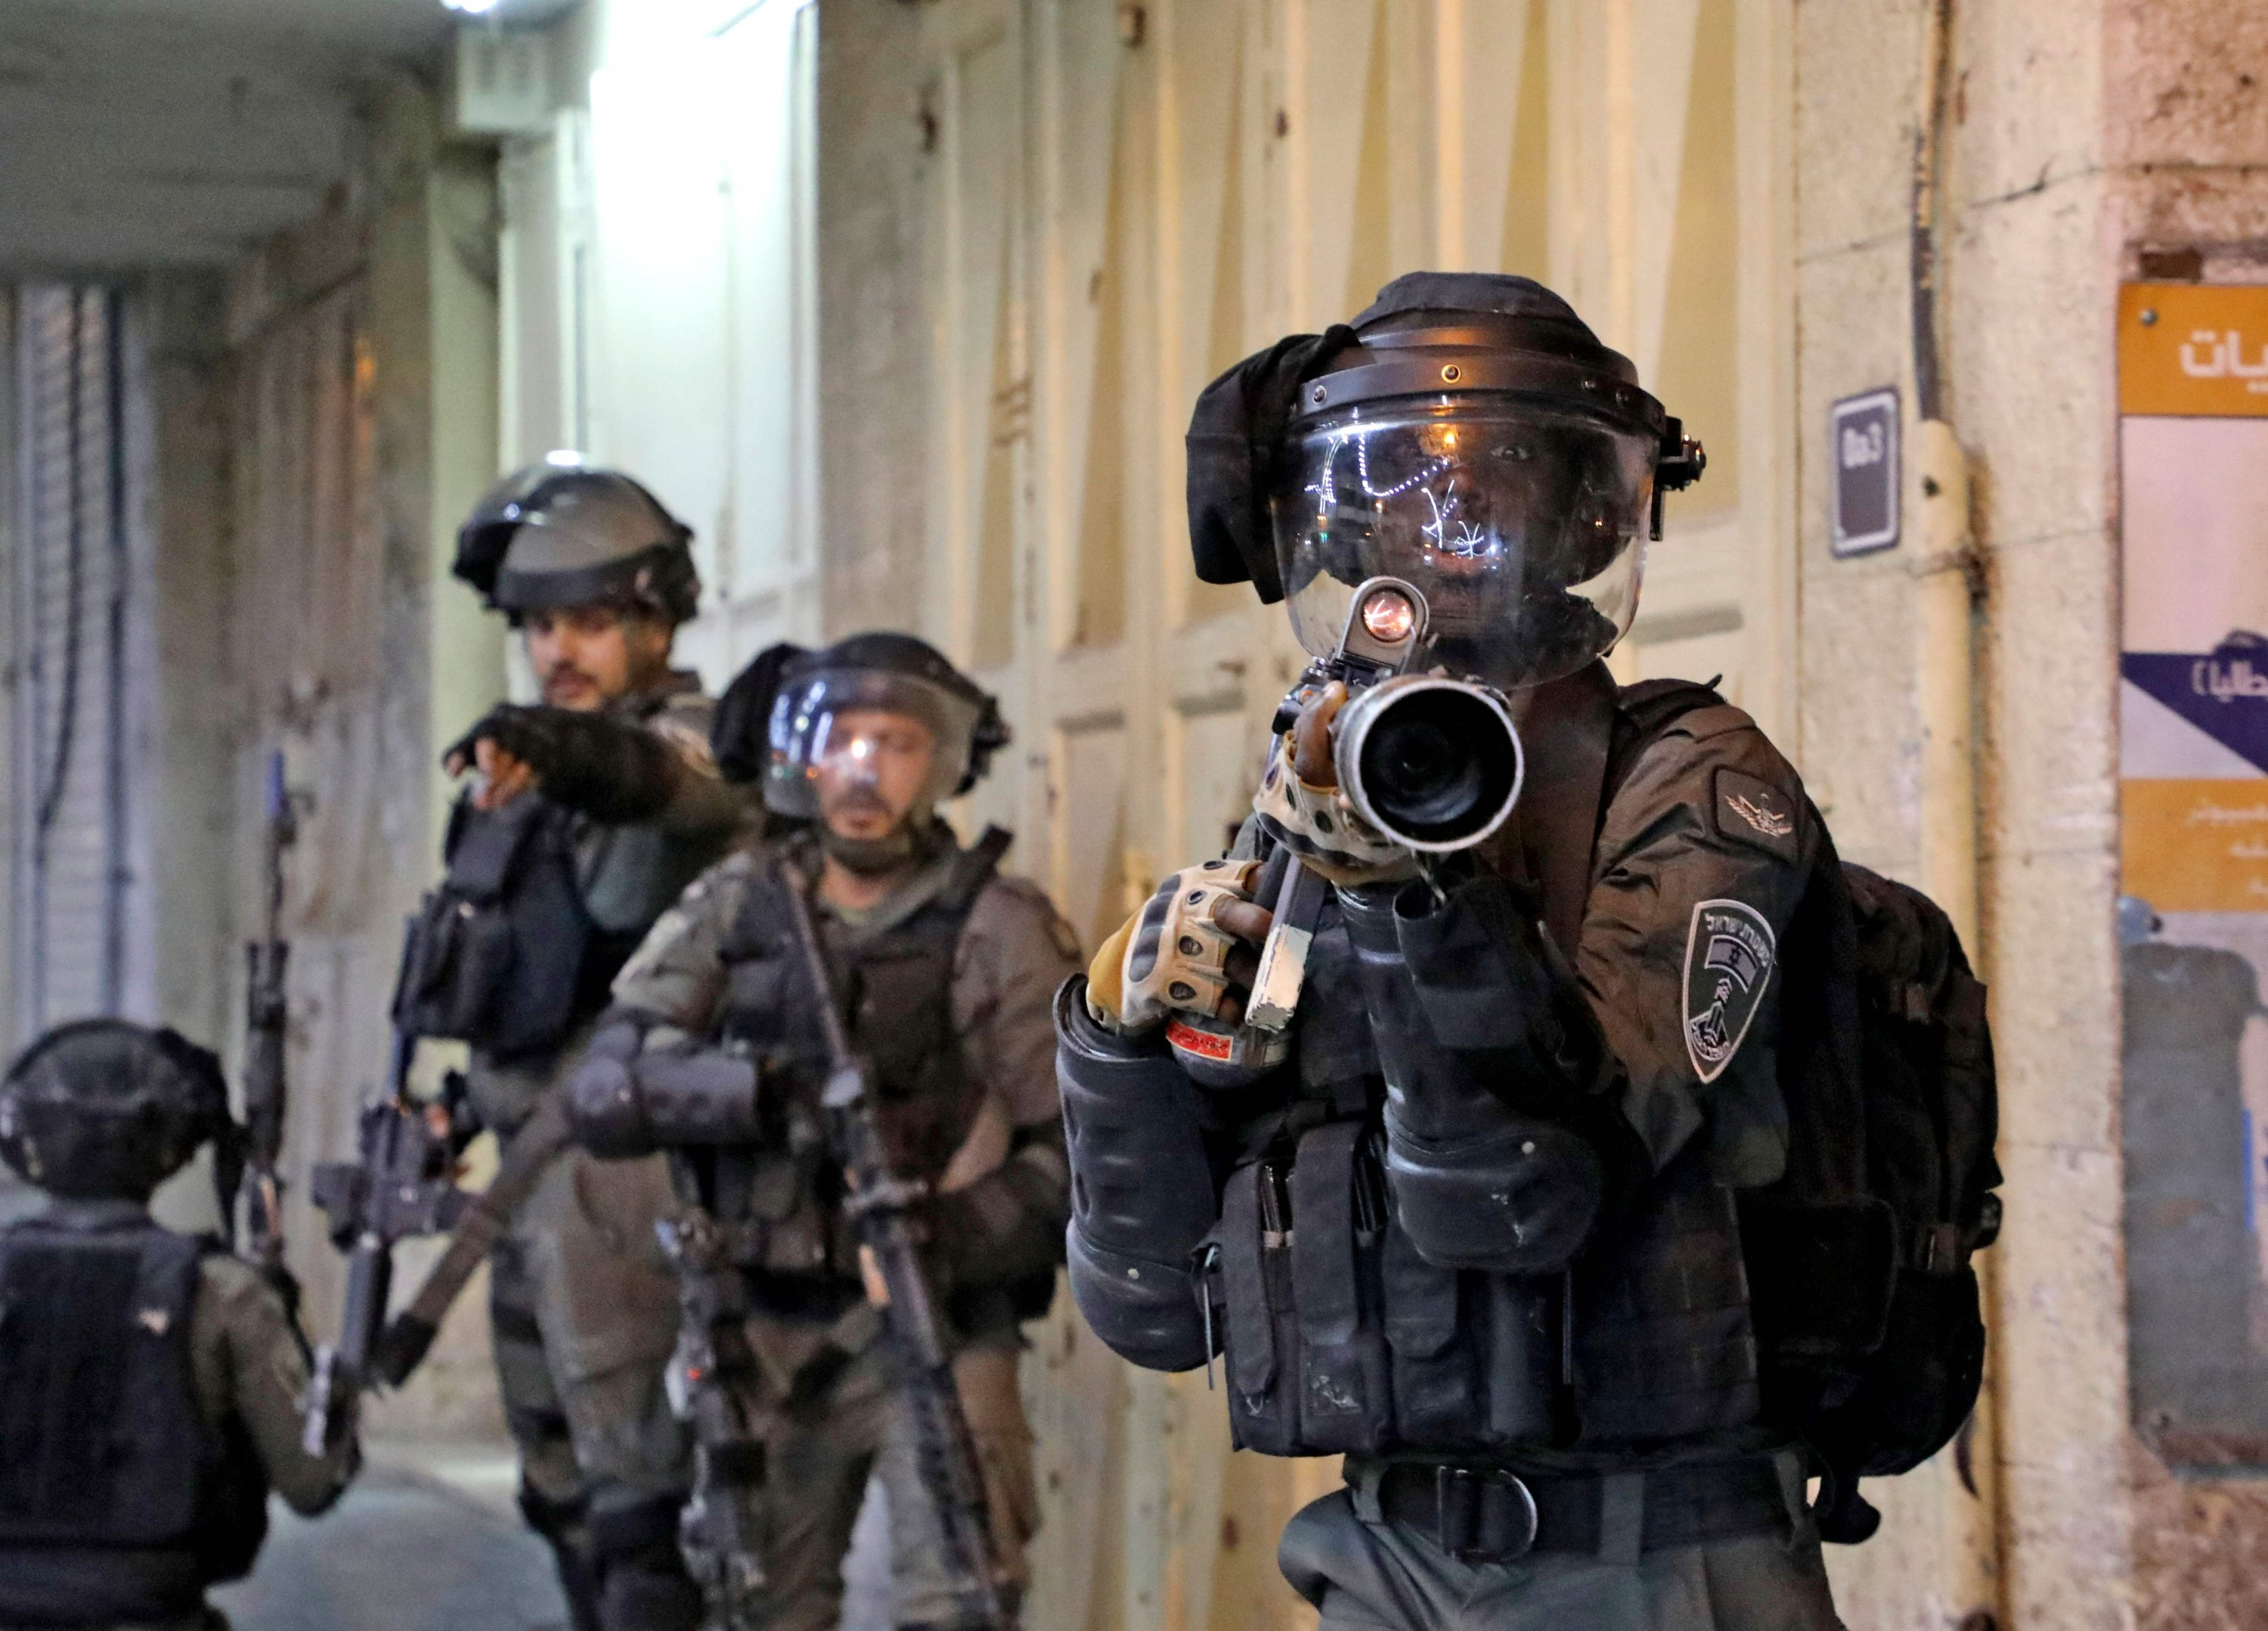 Israeli forces take position amid Palestinian protests in Hebron, occupied West Bank, May 12, 2021. (AFP Photo)